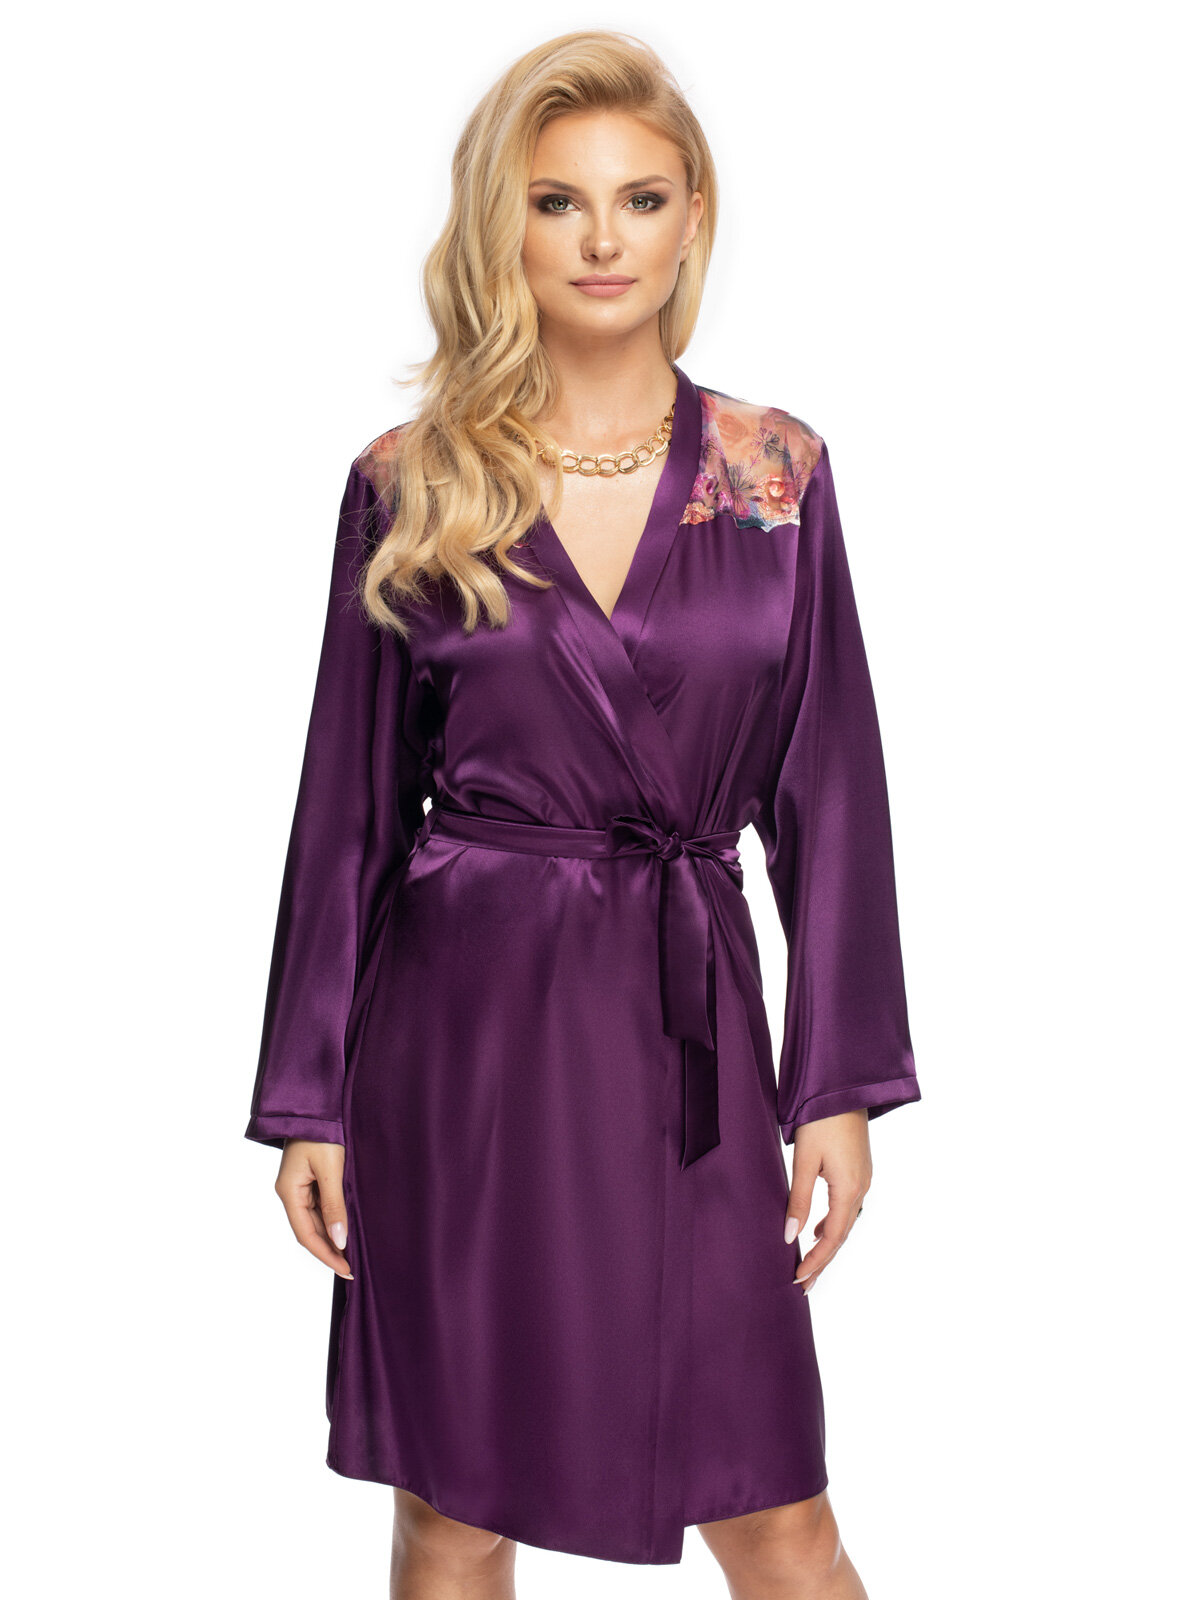 Halat Shelby Mov Shelby_dressing gown